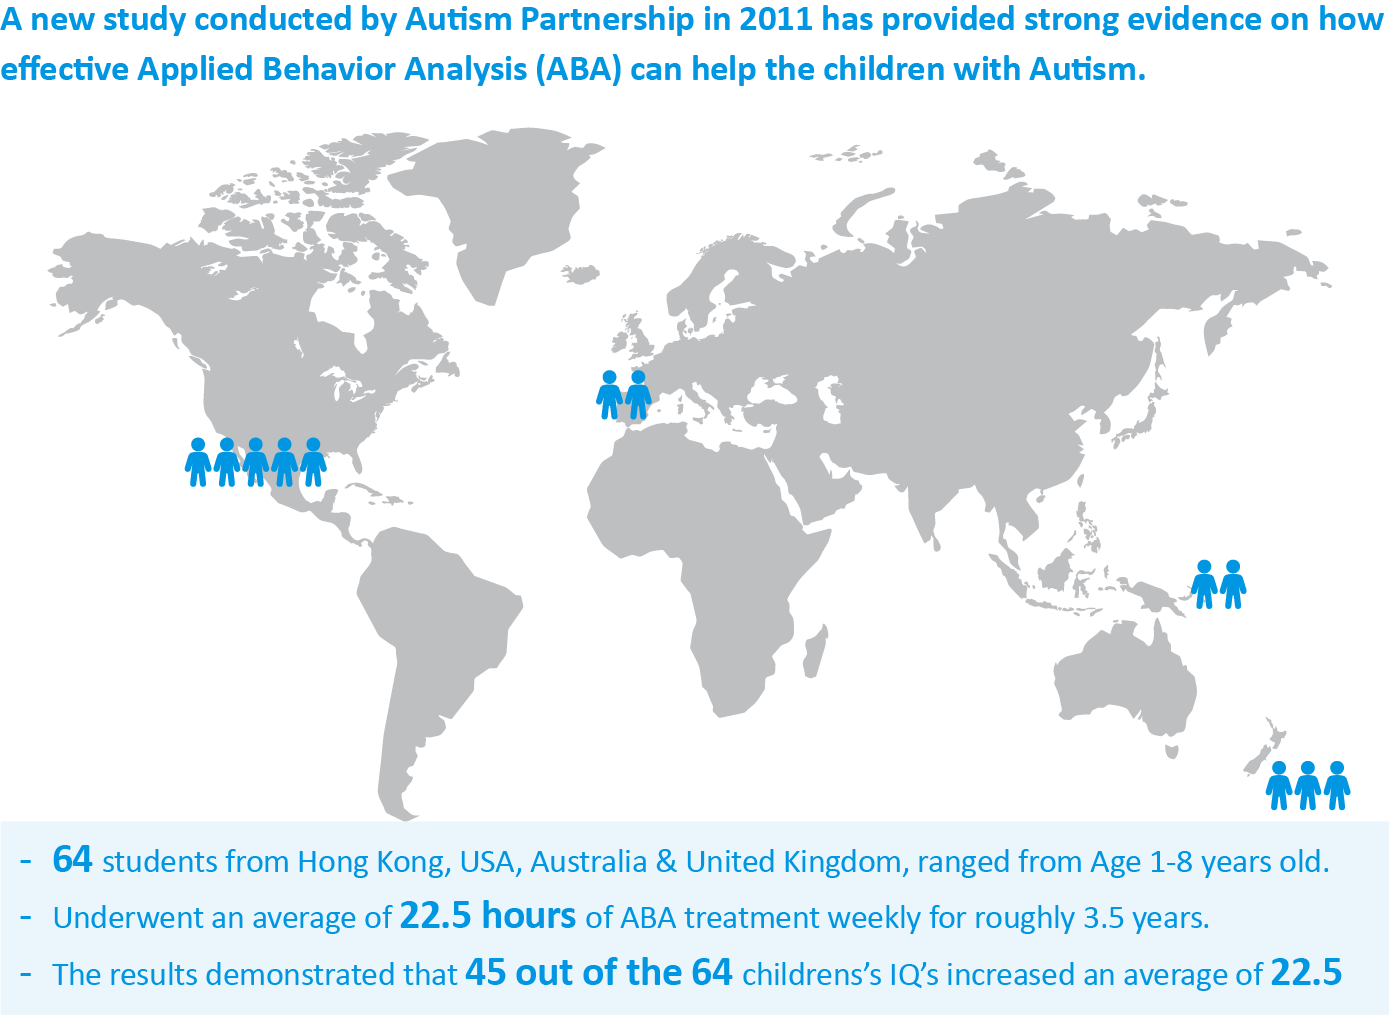 autism-partnership_aba-treatment_result-english